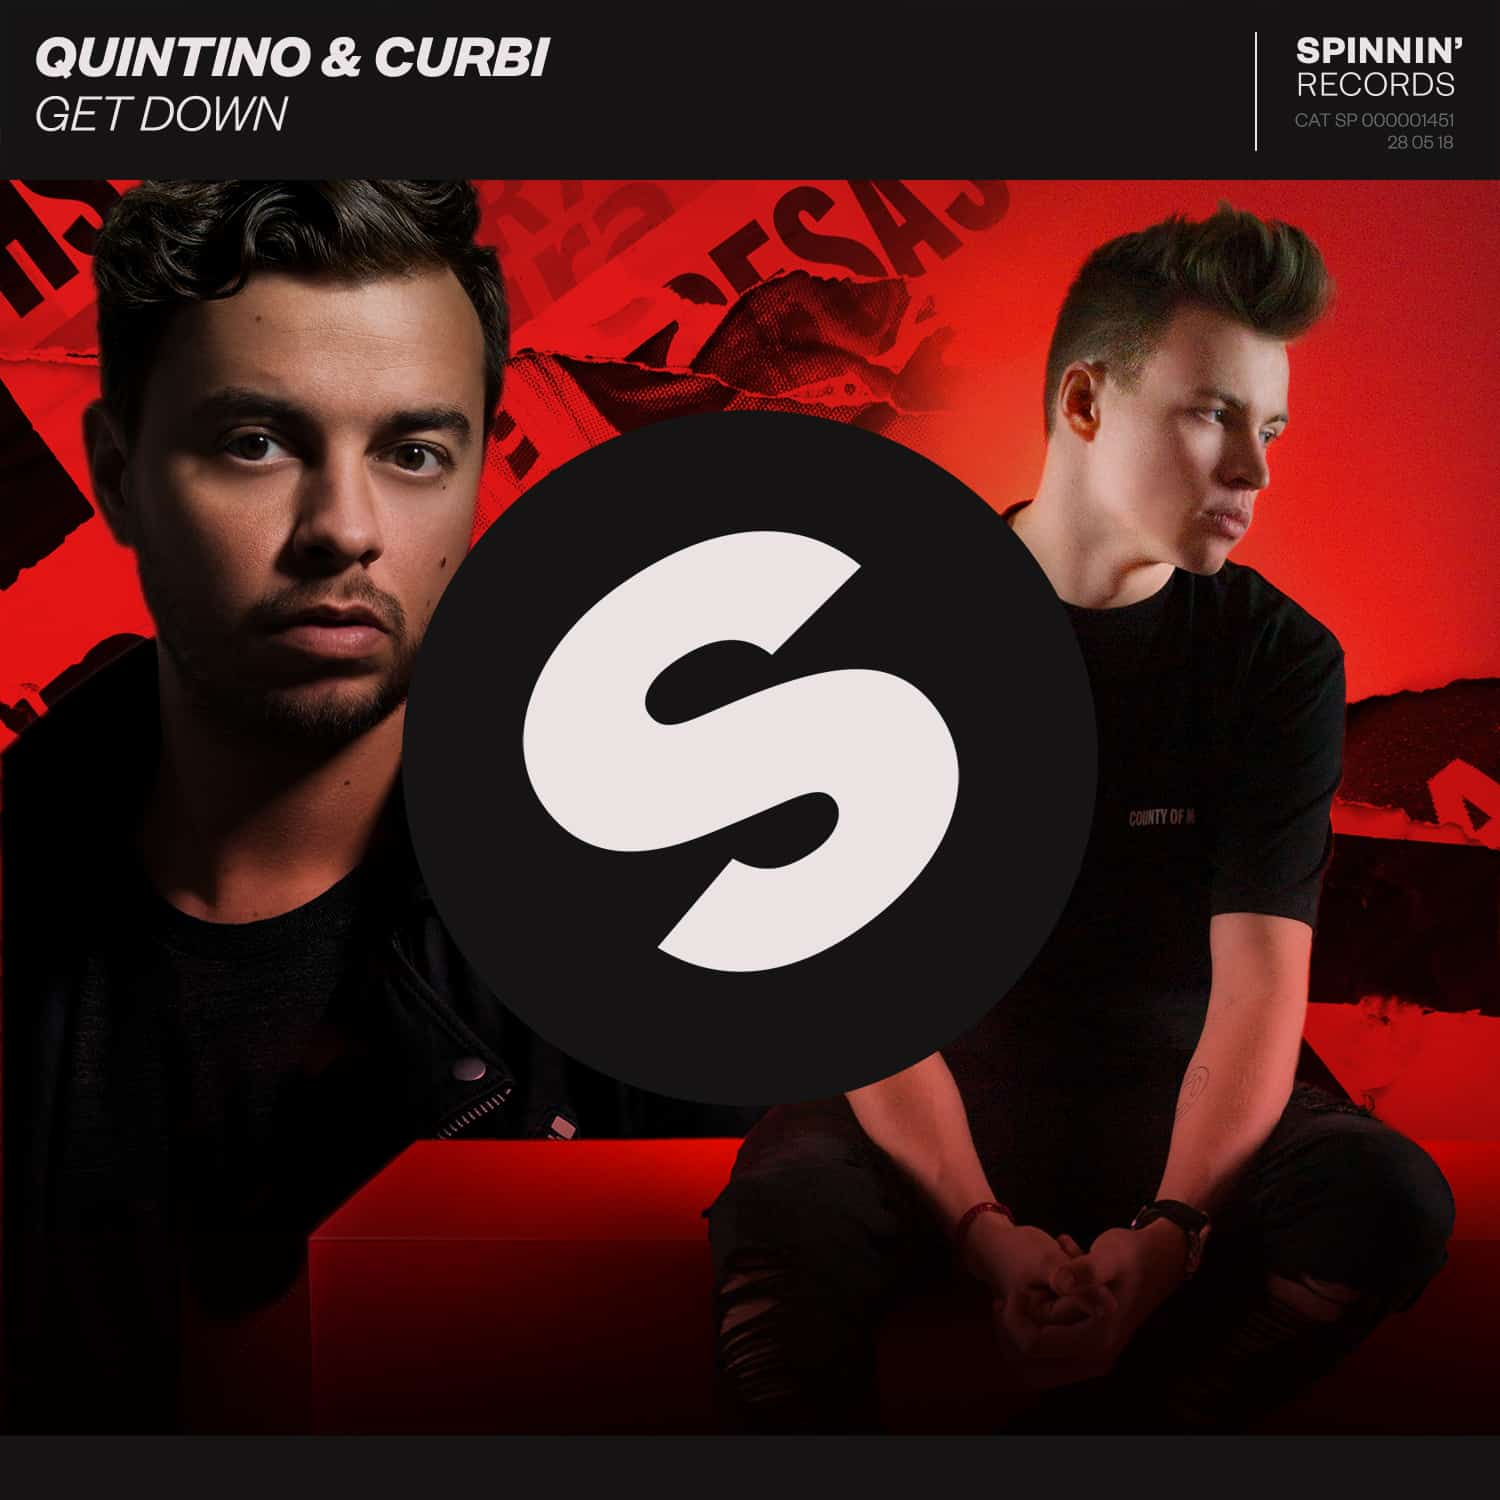 Quintino teams up with Curbi for hot collab single 'Get Down' on Spinnin' Records